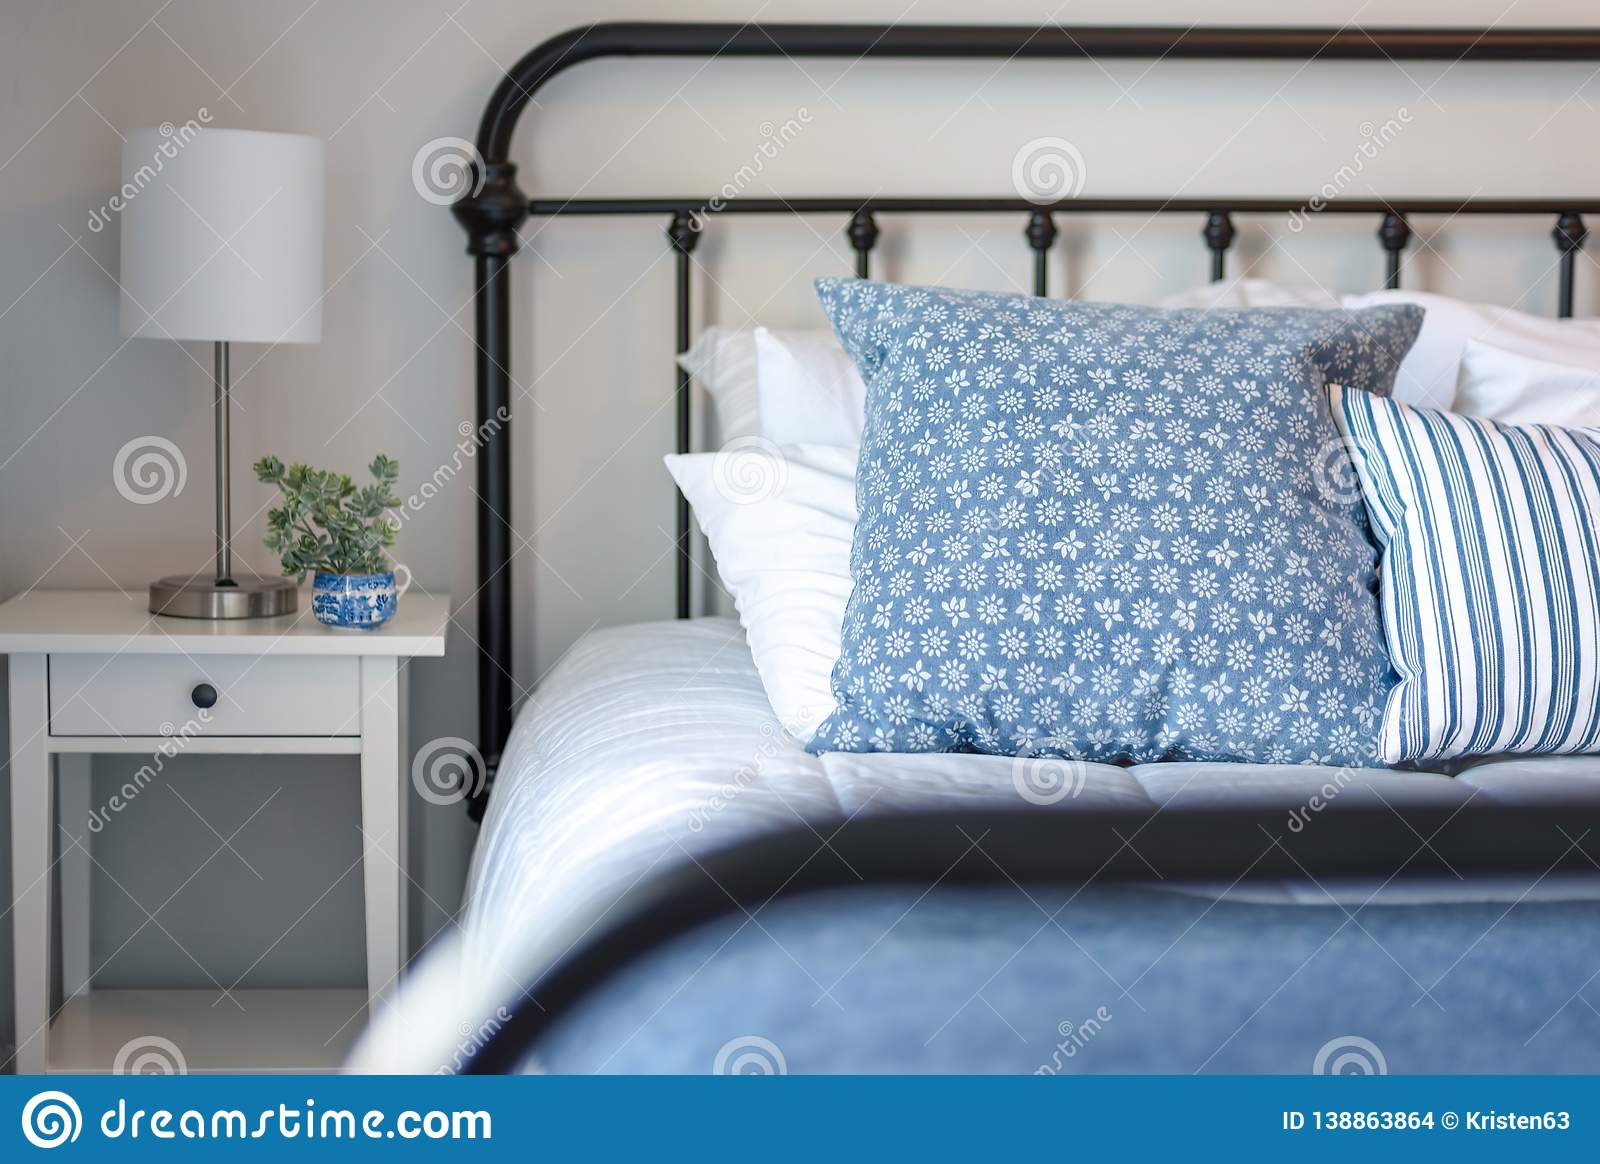 Bedroom Decorated In Blue And White Stock Photo Image Of House Linens 138863864